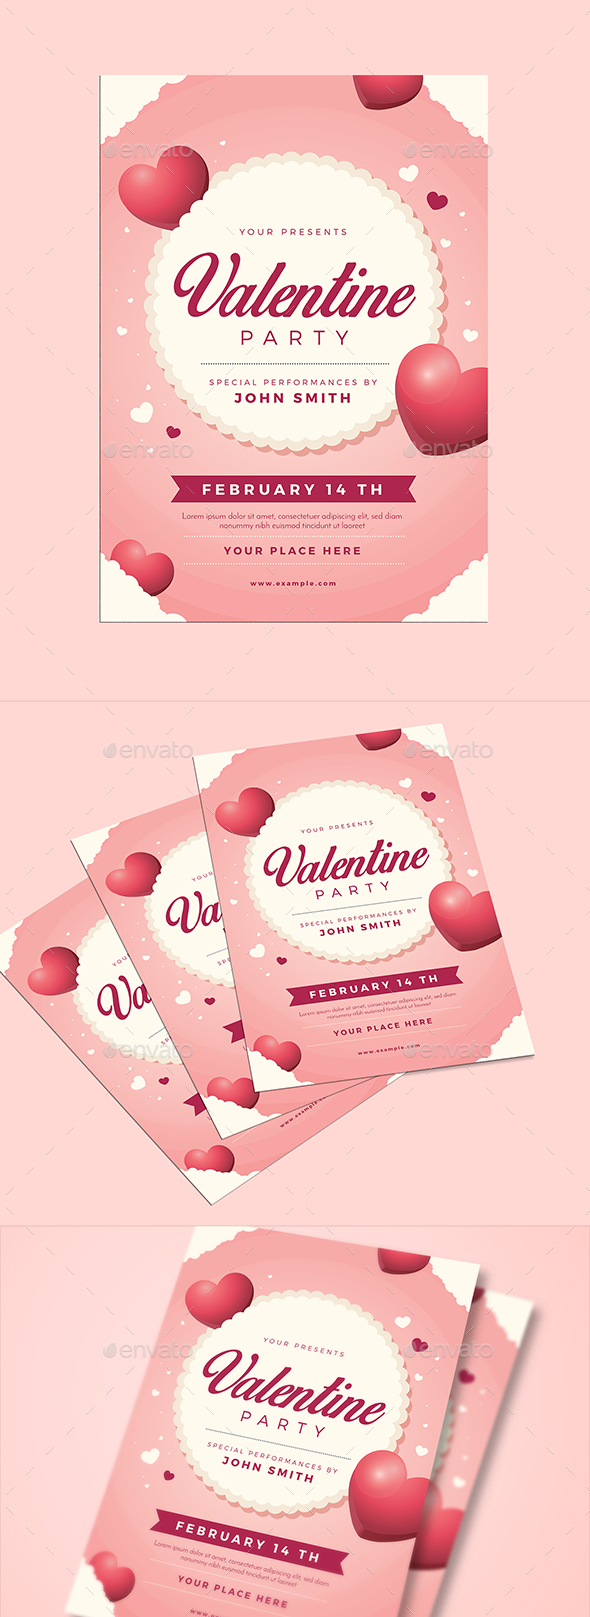 Valentine Event Flyer - Events Flyers